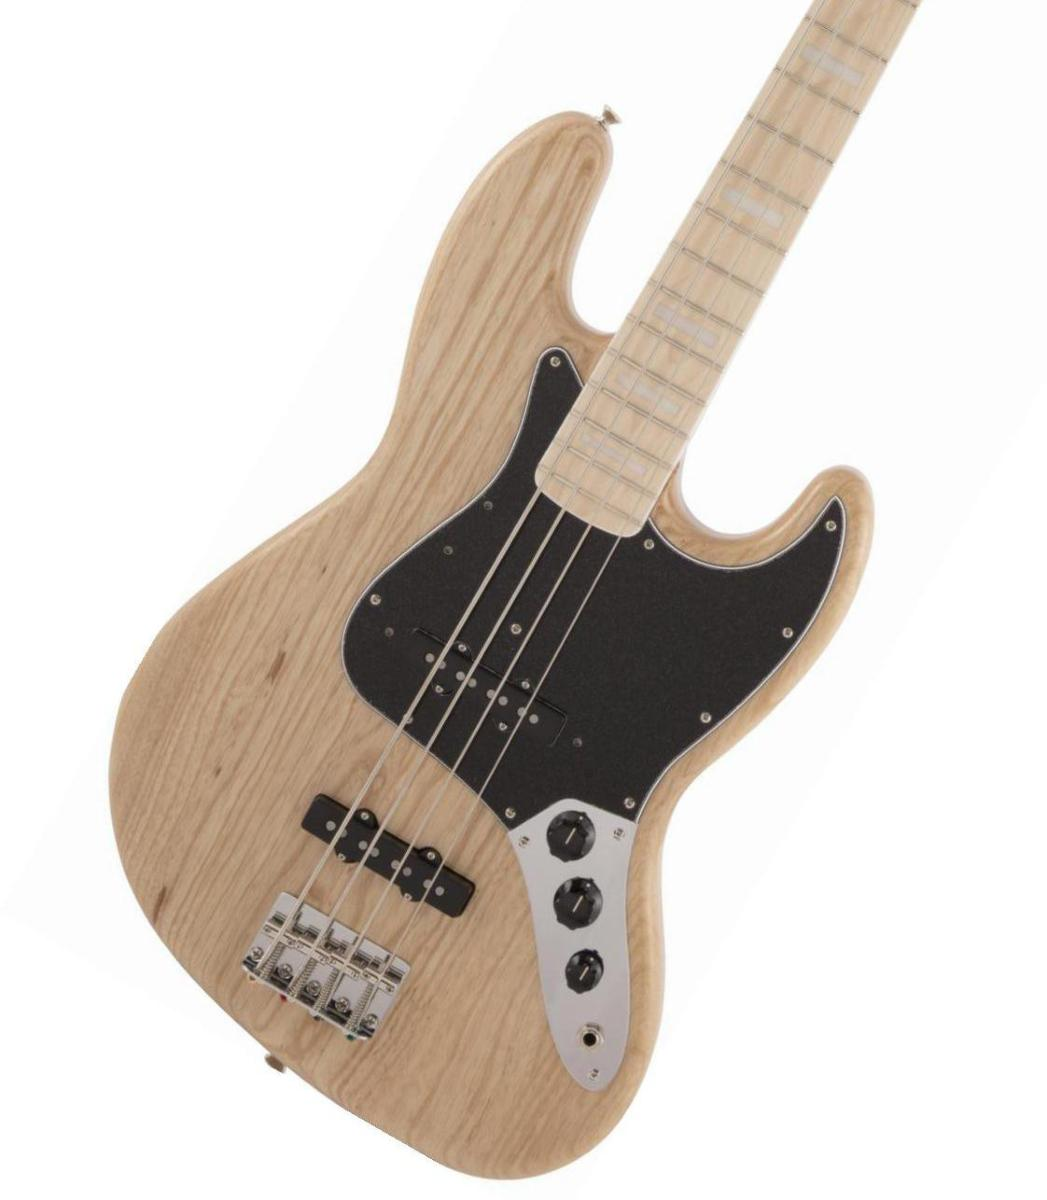 ベース, エレキベース Fender Made in Japan Traditional 70s Jazz Bass Maple Fingerboard Natural 1!6619444002020 NEW MODEL